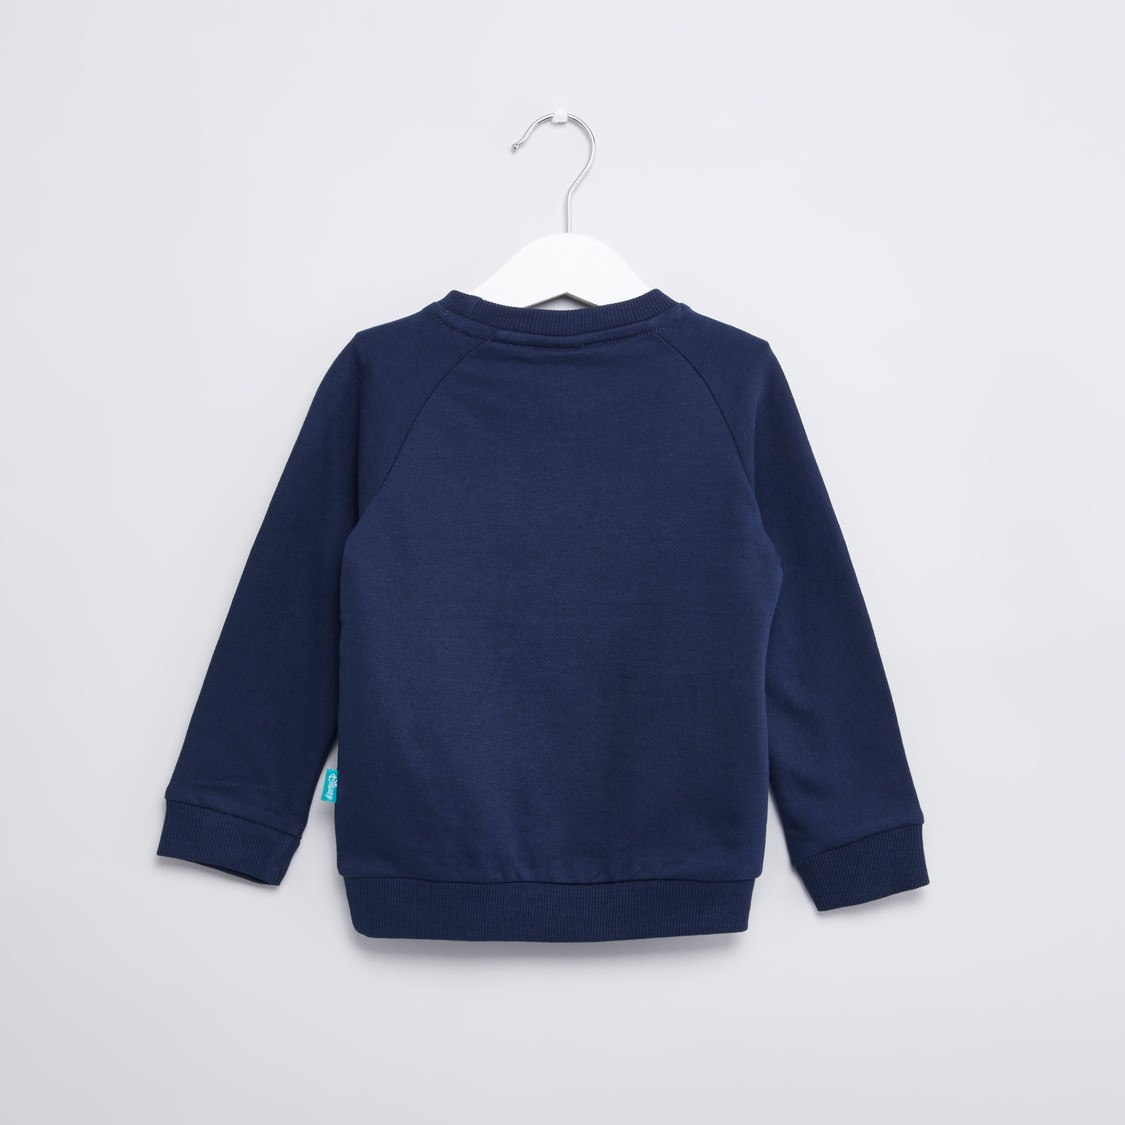 Donald Duck Printed Sweatshirt with Round Neck and Long Sleeves